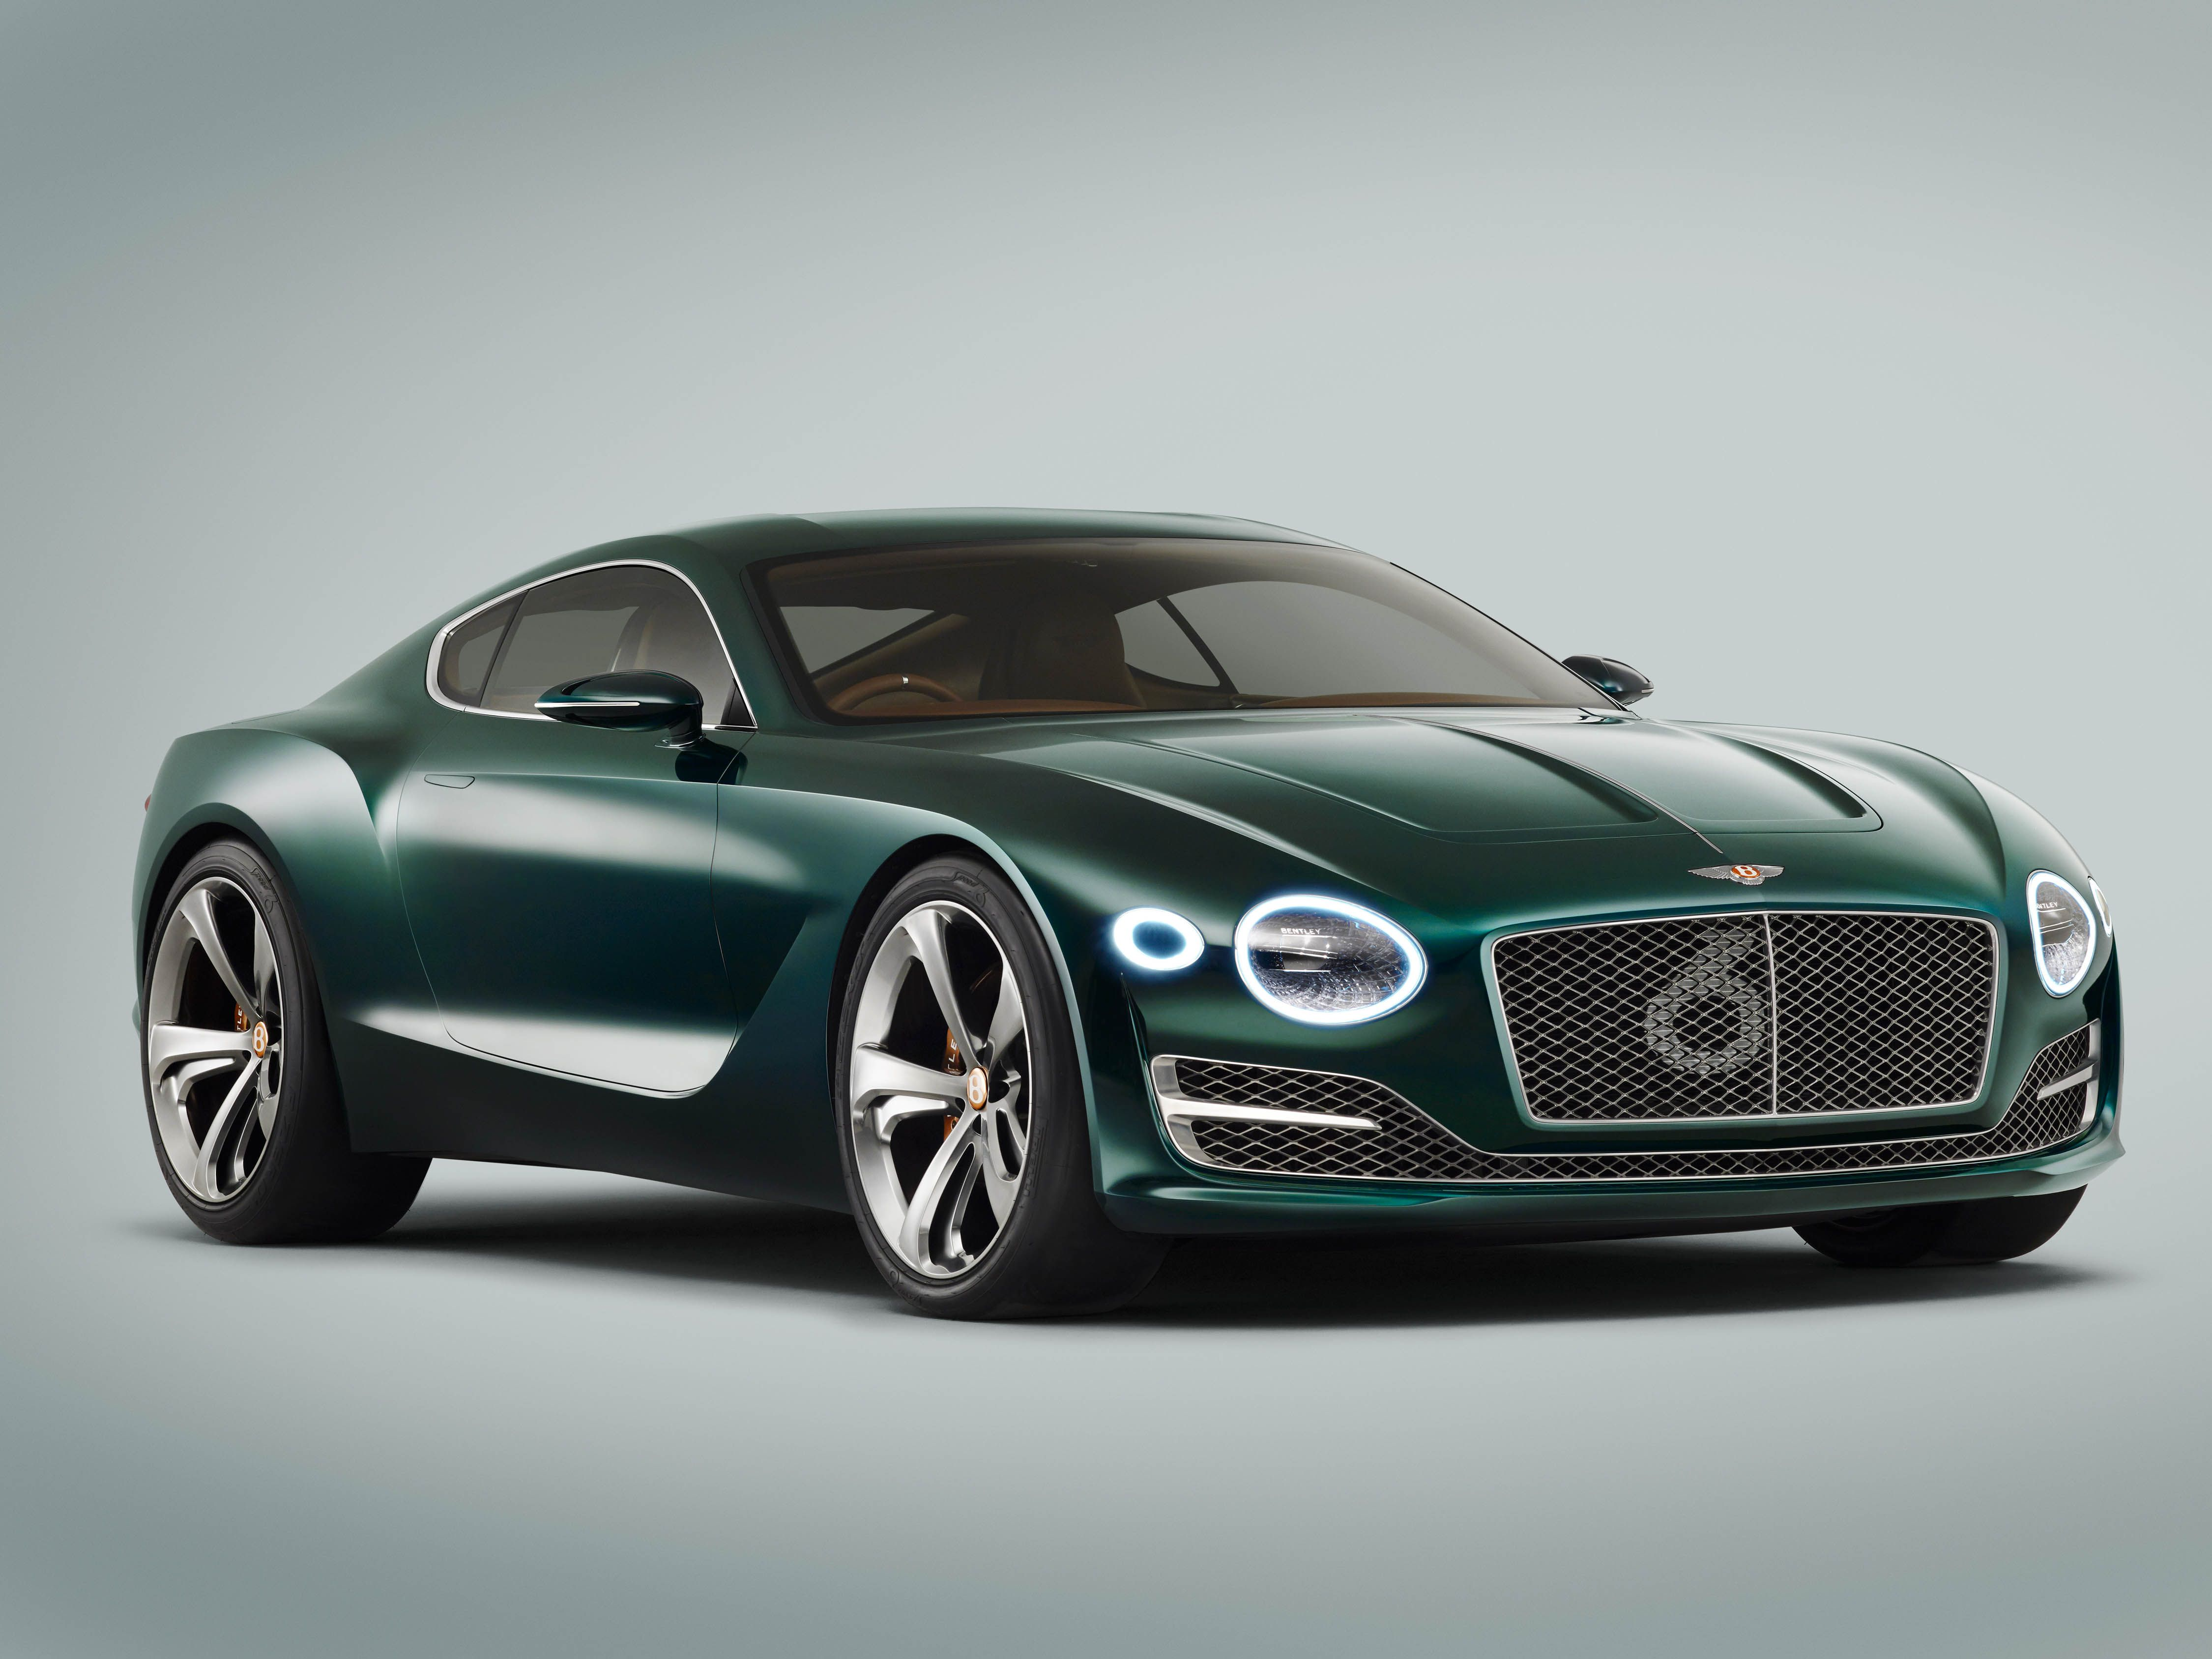 driving new missile auto with news horsepower bentley a gt continental luxury coupe